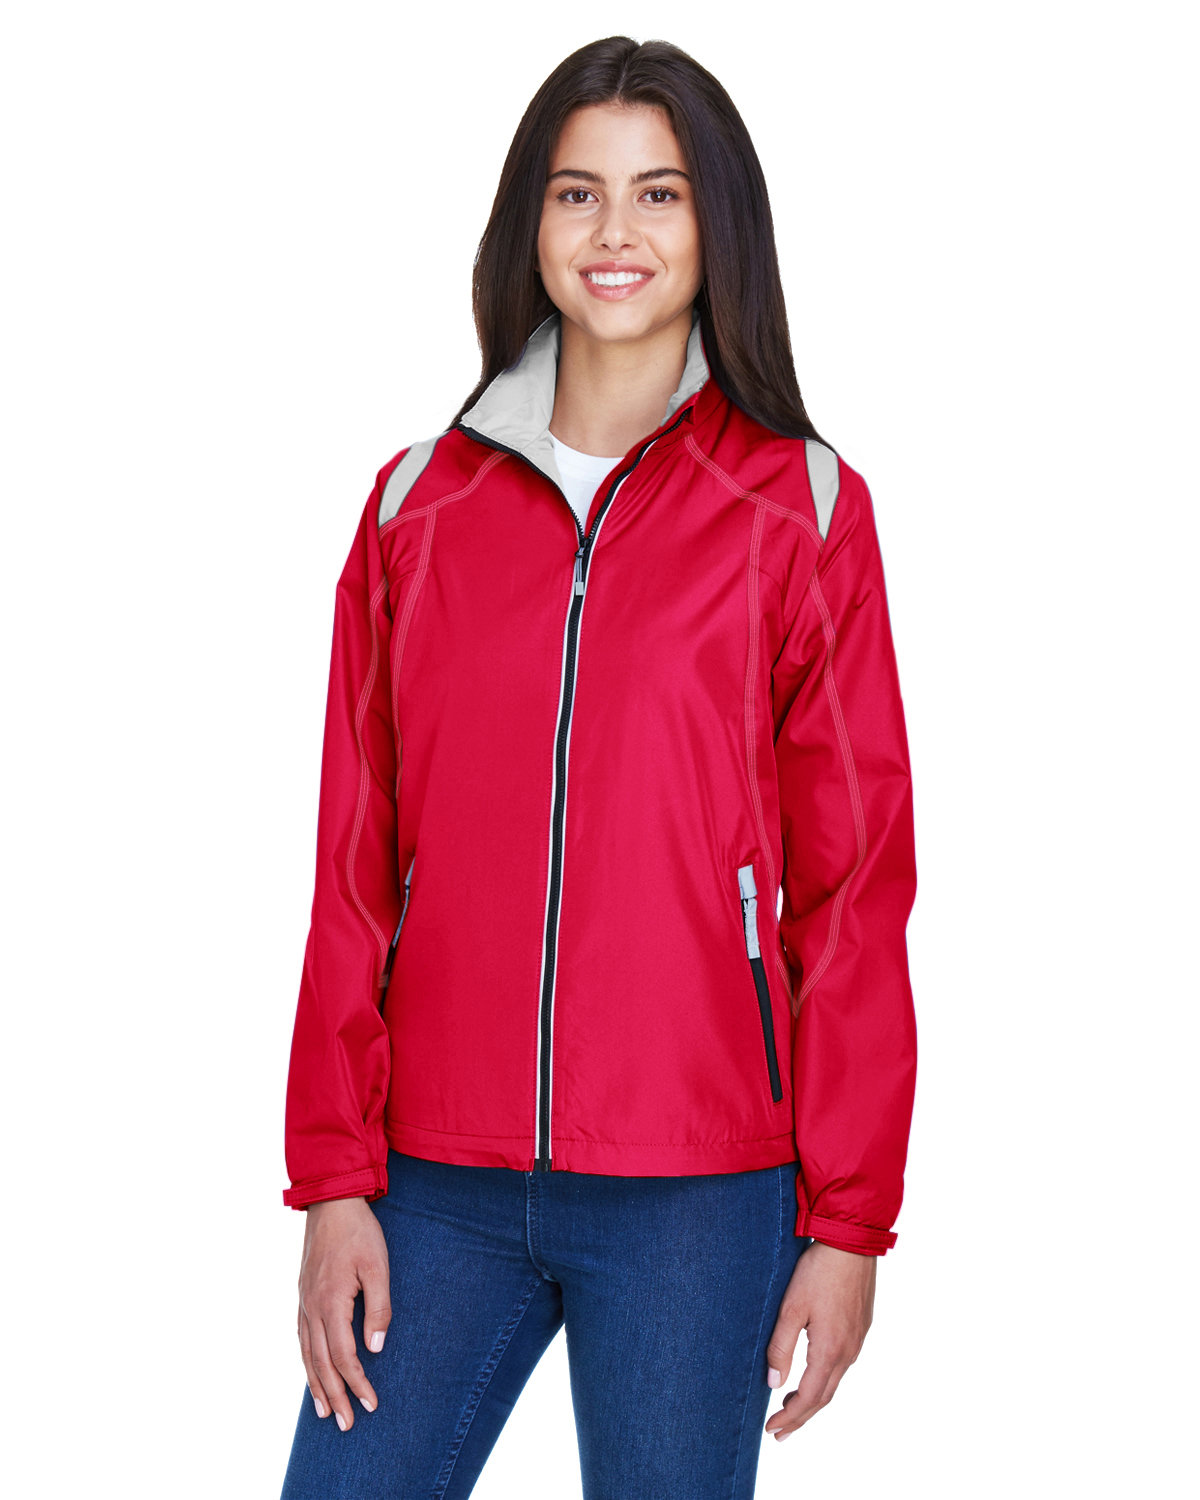 North End Ladies' Endurance Lightweight Colorblock Jacket OLYMPIC RED